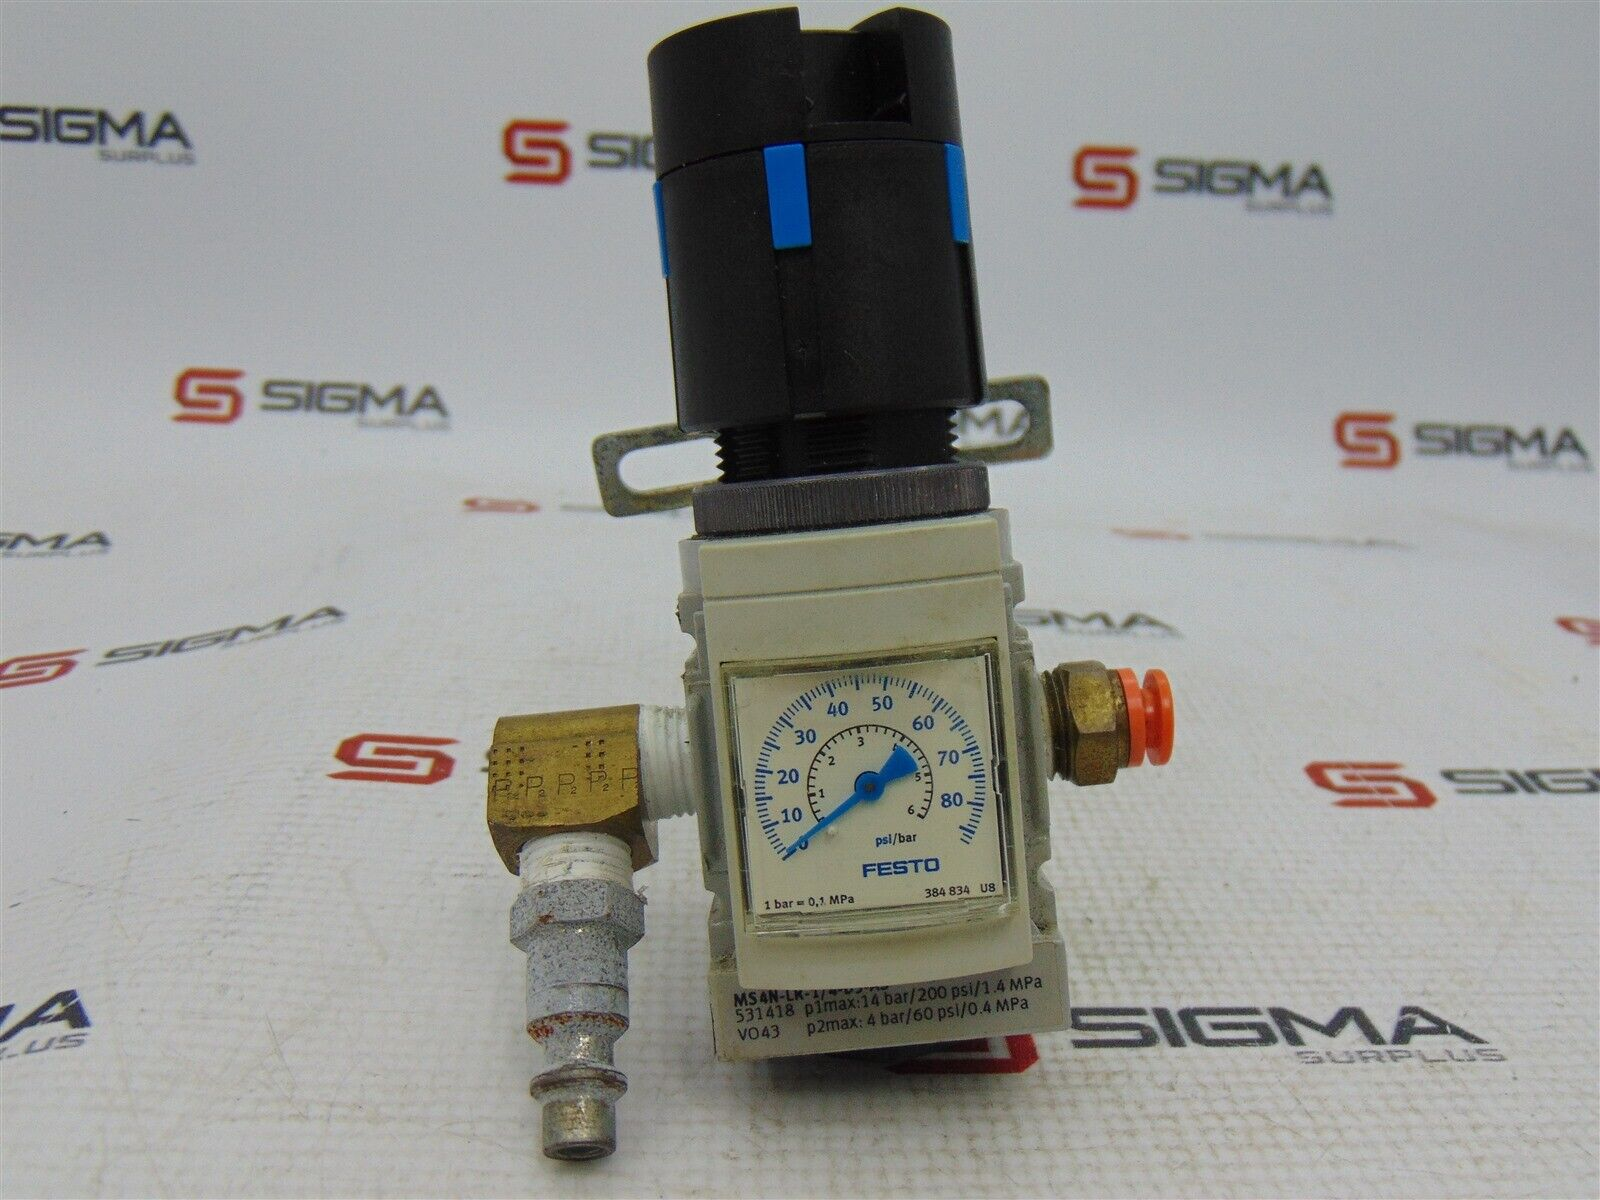 Festo MS4N-LR-1/4-D5-AS Pressure Regulator w/ Gauge